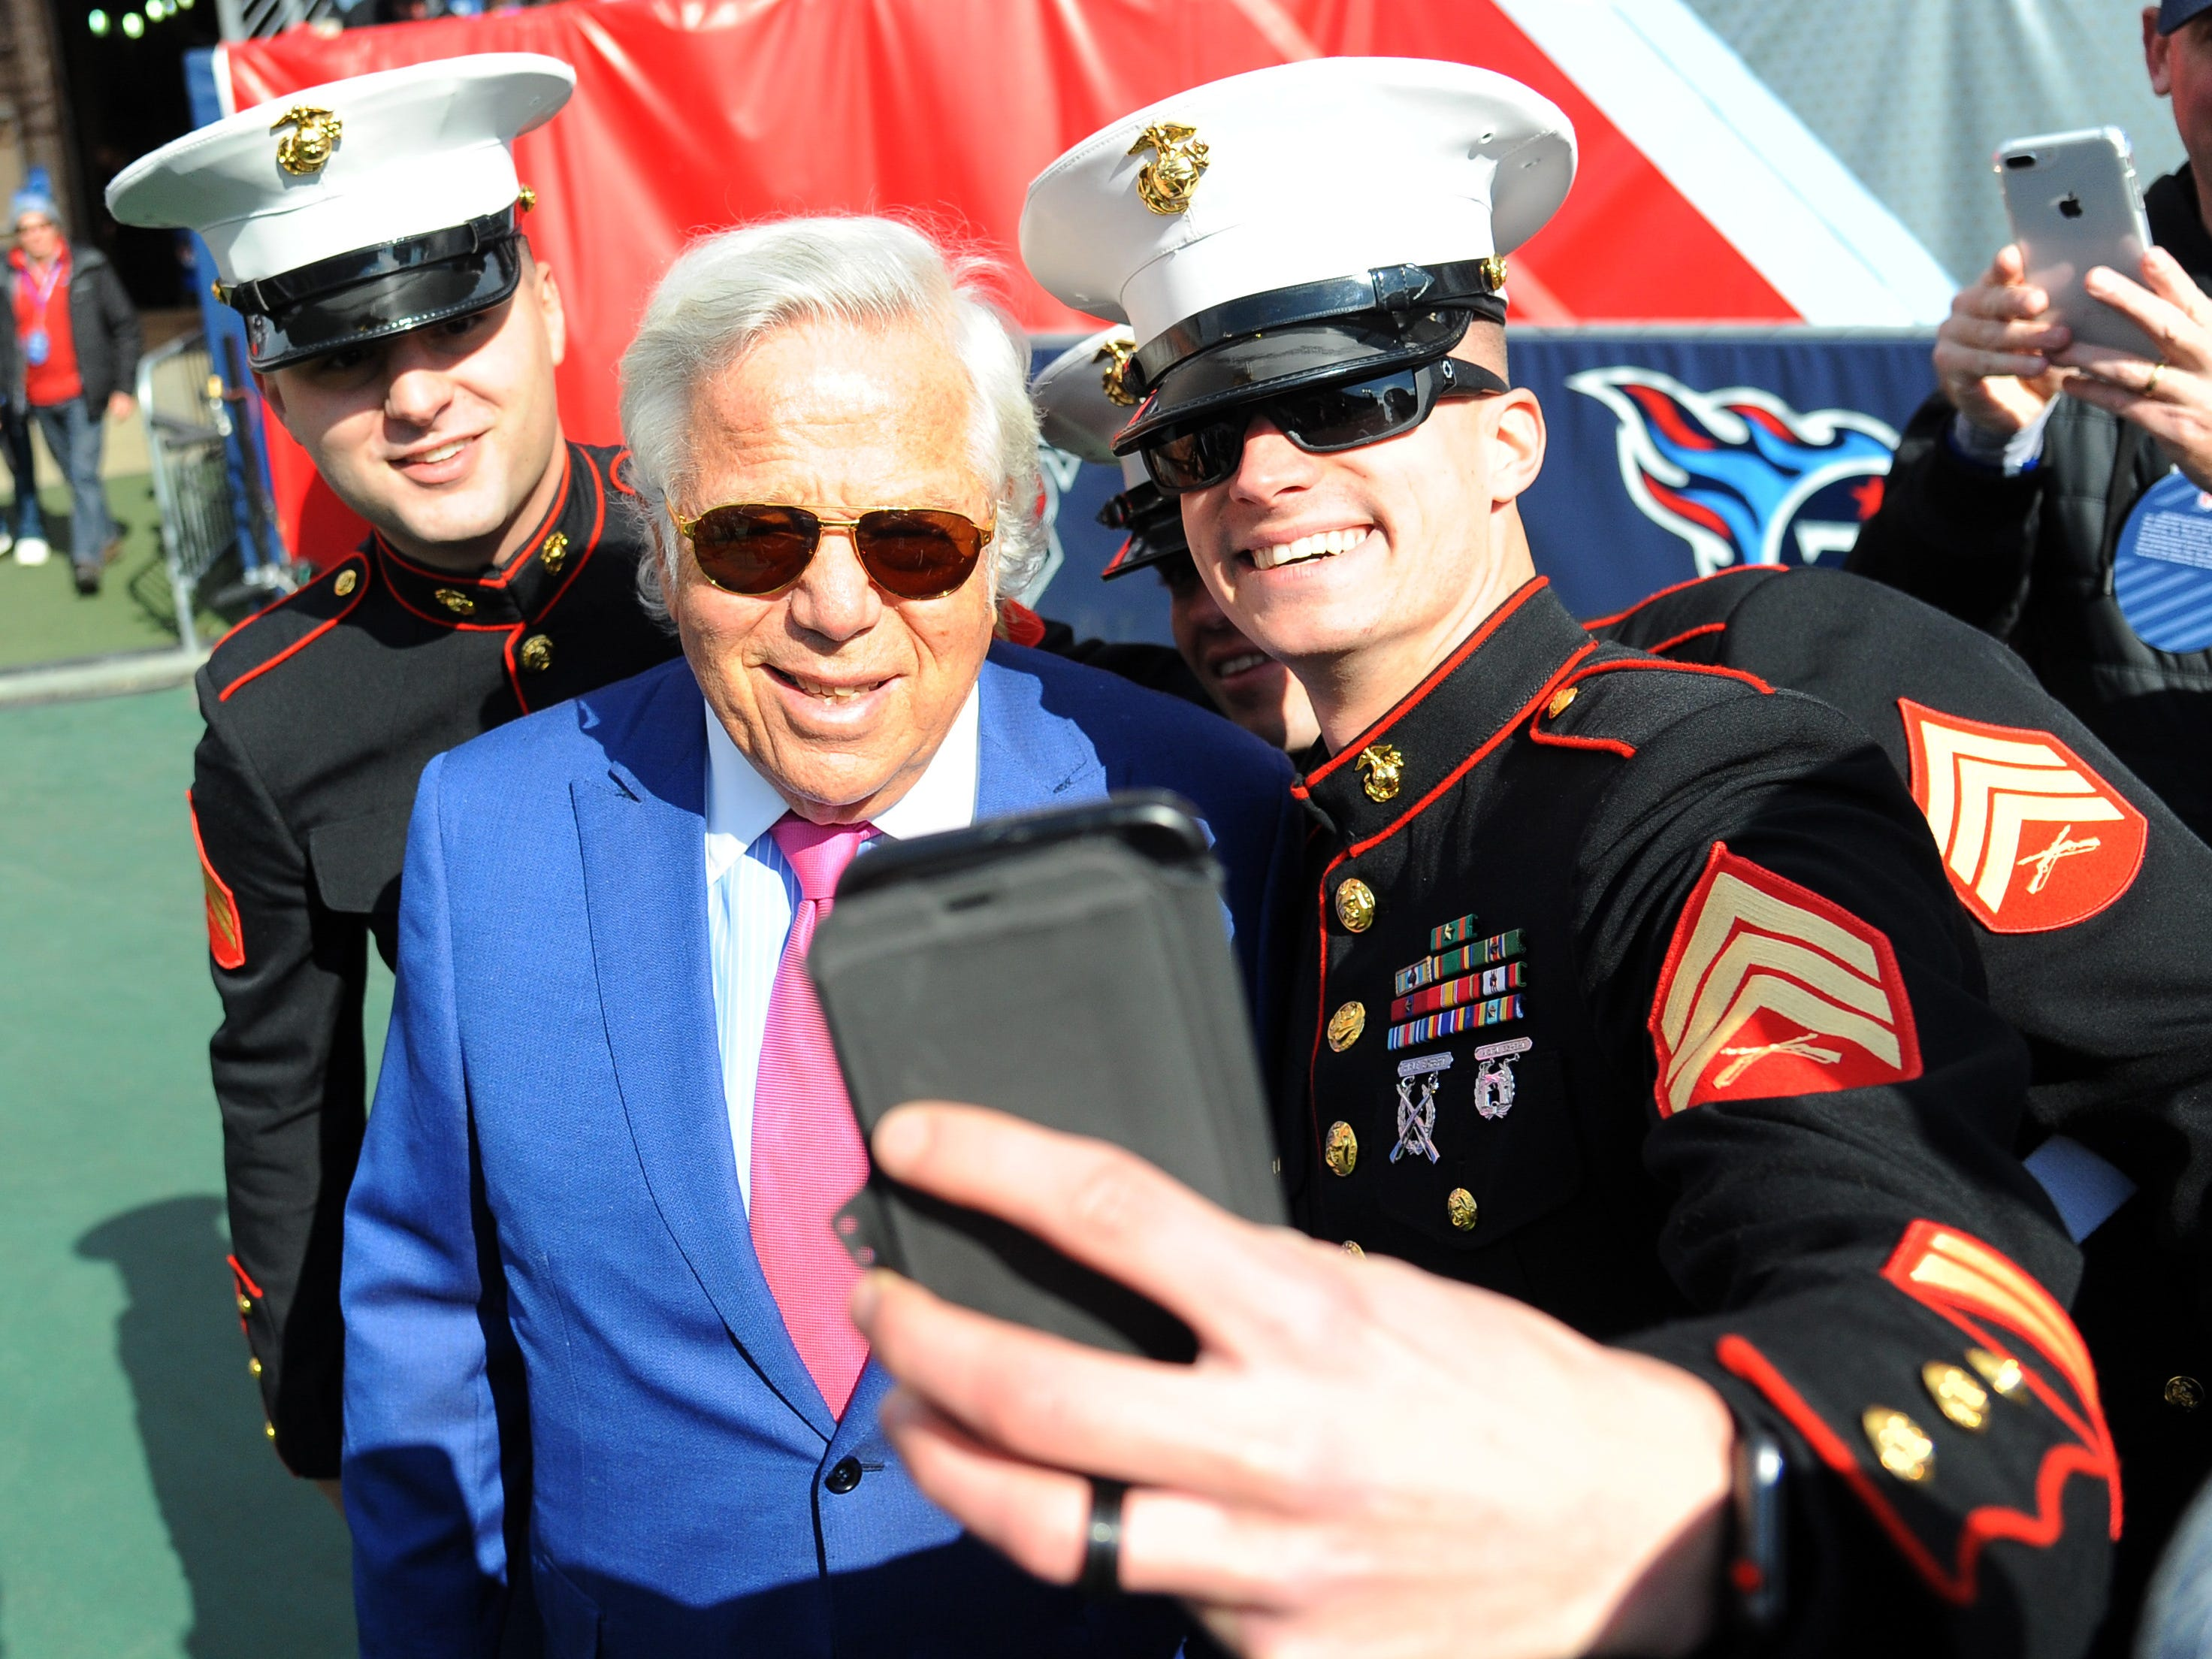 Patriots owner Robert Kraft takes a selfie with Marine Corp sergeants.